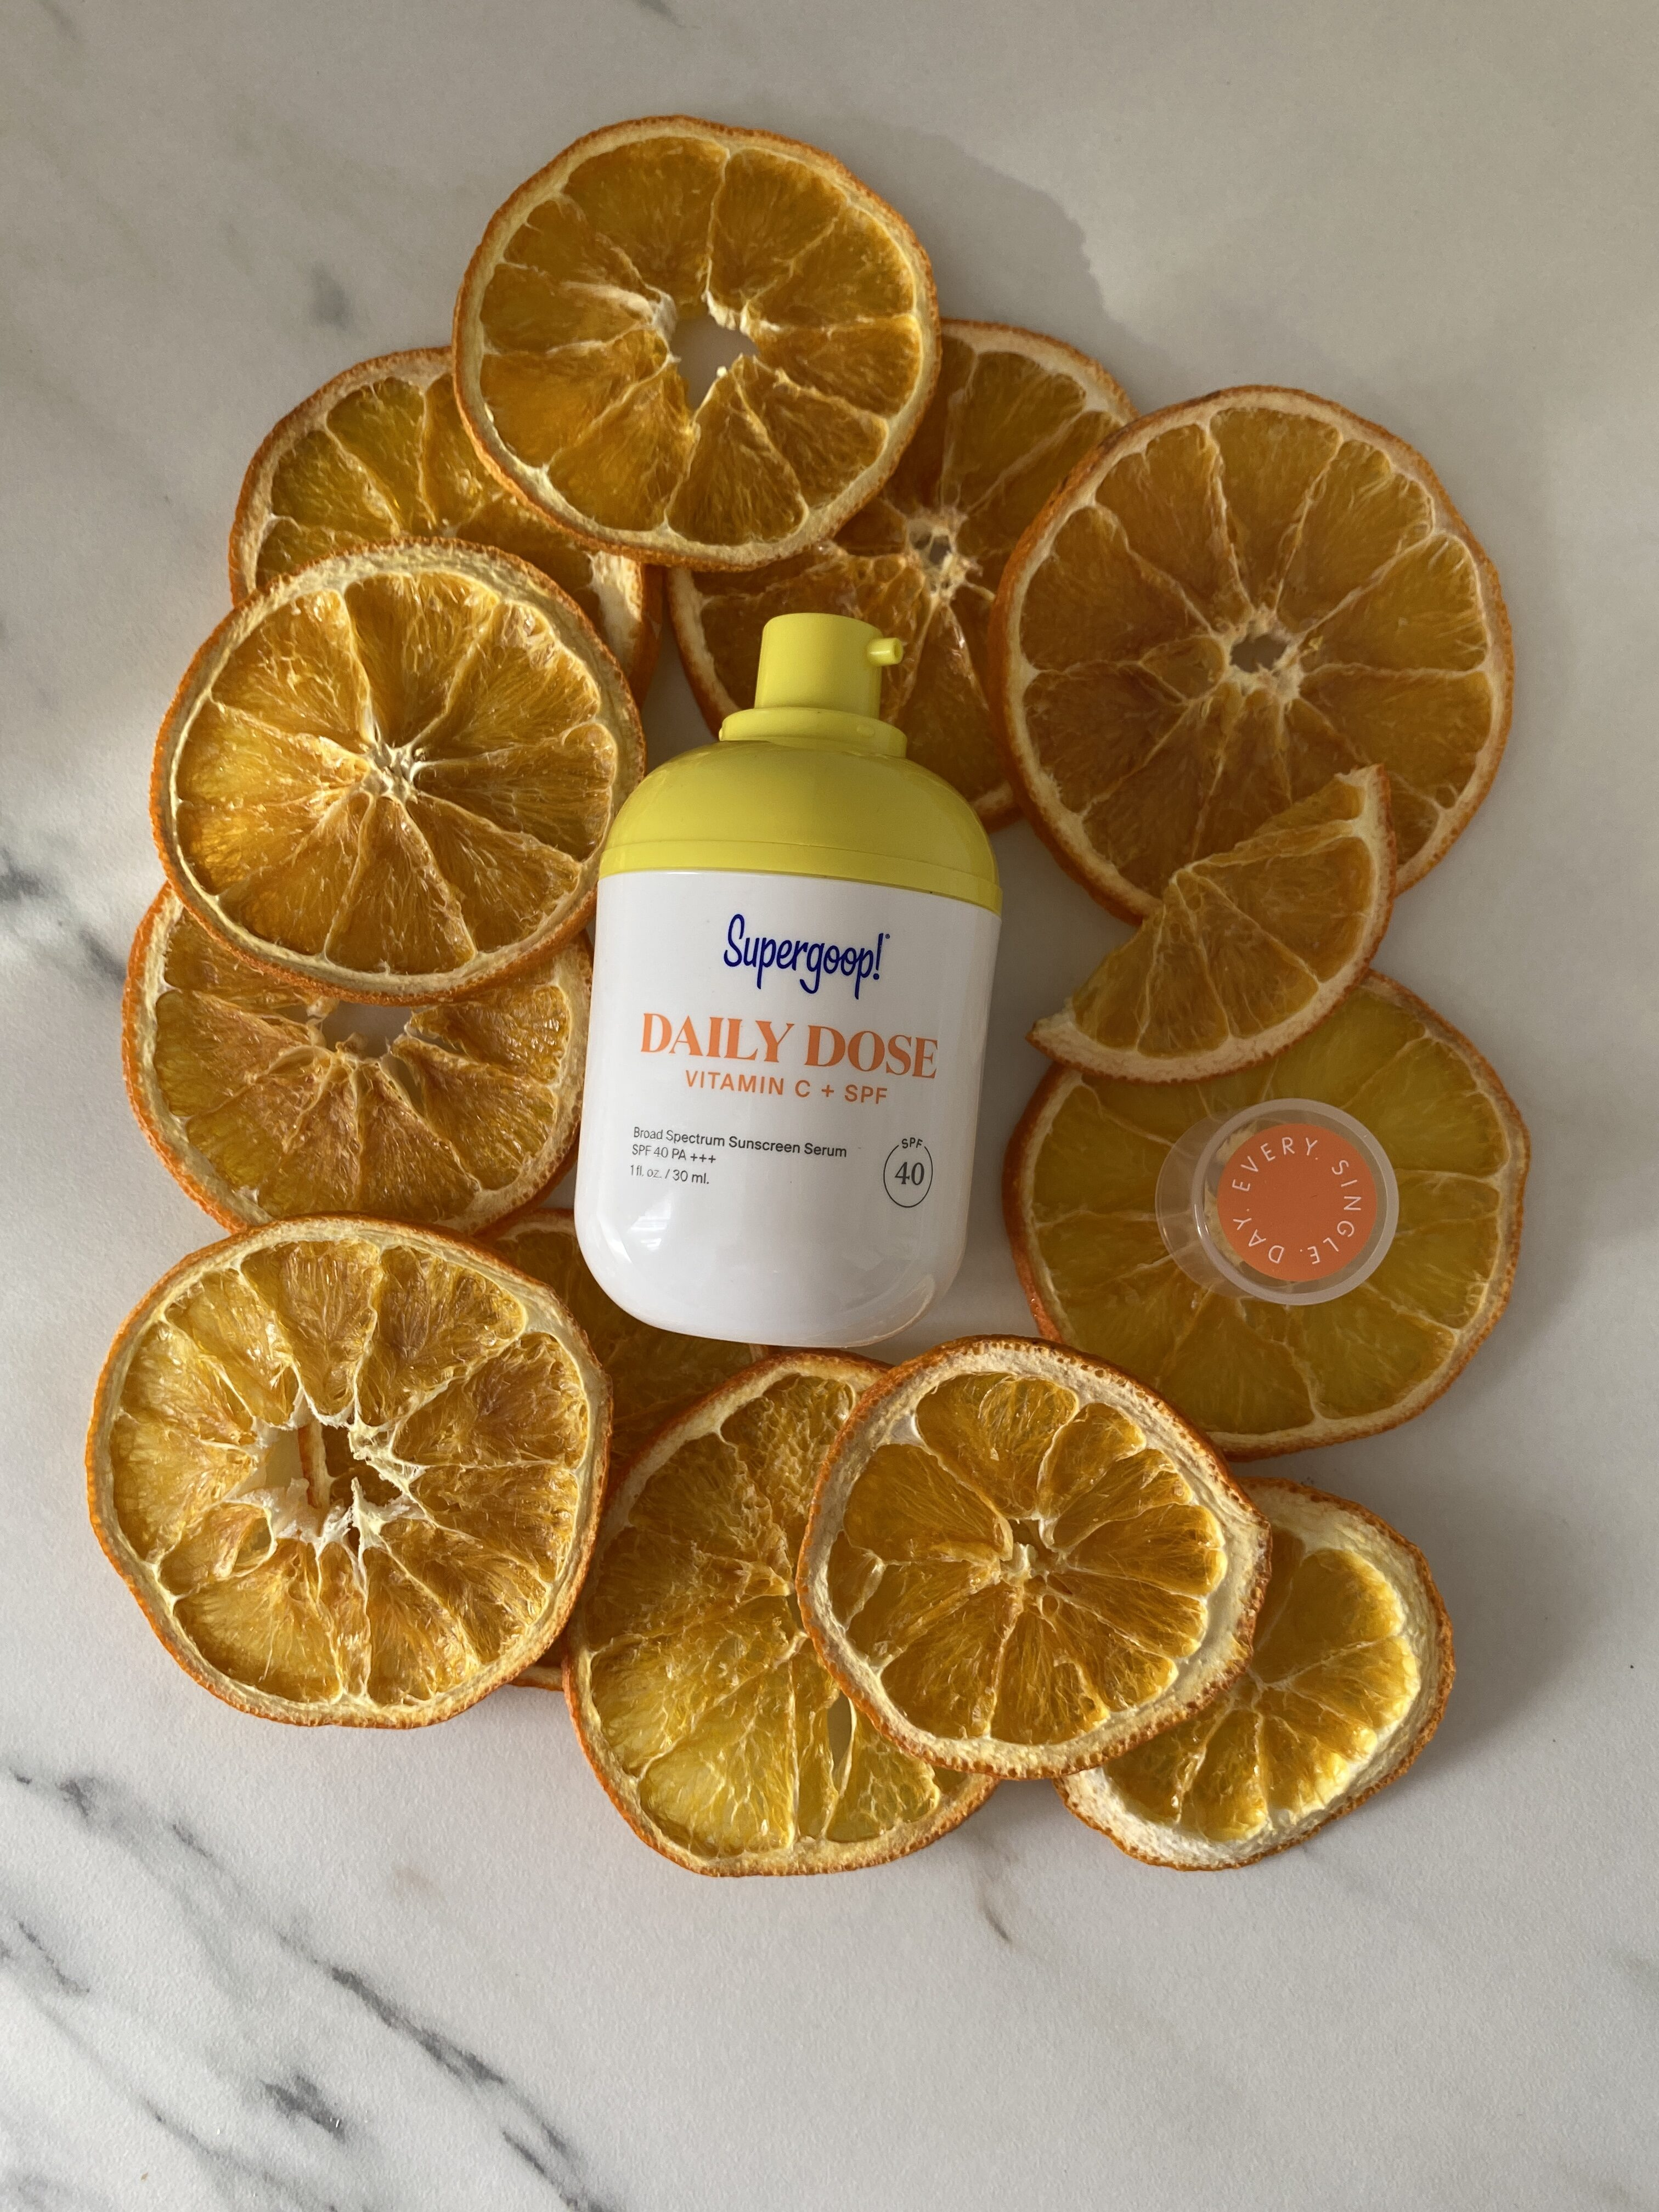 Supergoop Daily Dose Vitamin C + SPF 40 laying on top of dried oranges.